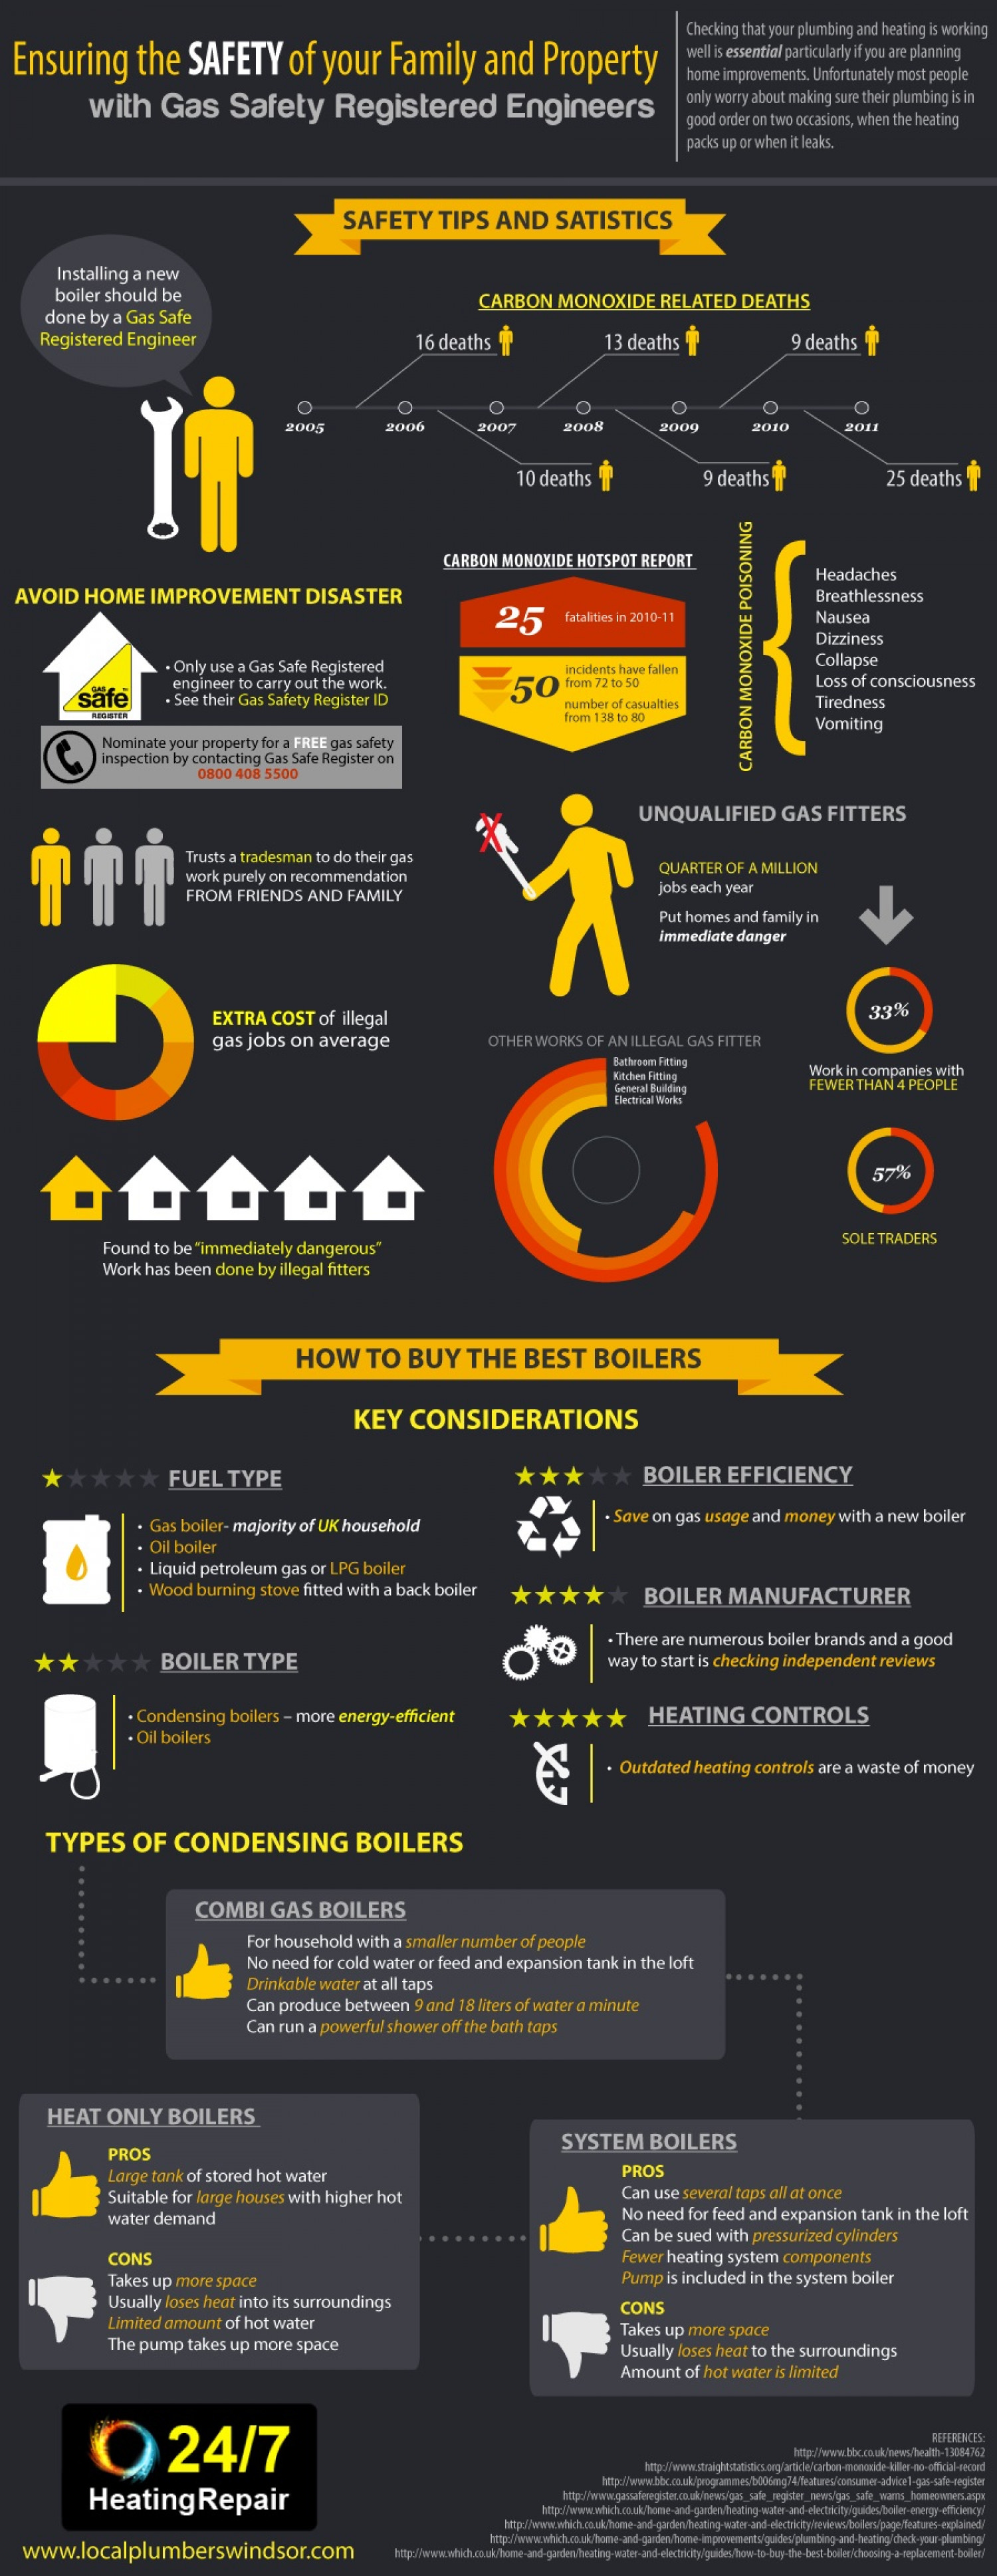 Ensuring The Safety of Your Family and Property with Gas Safety Registered Engineers Infographic